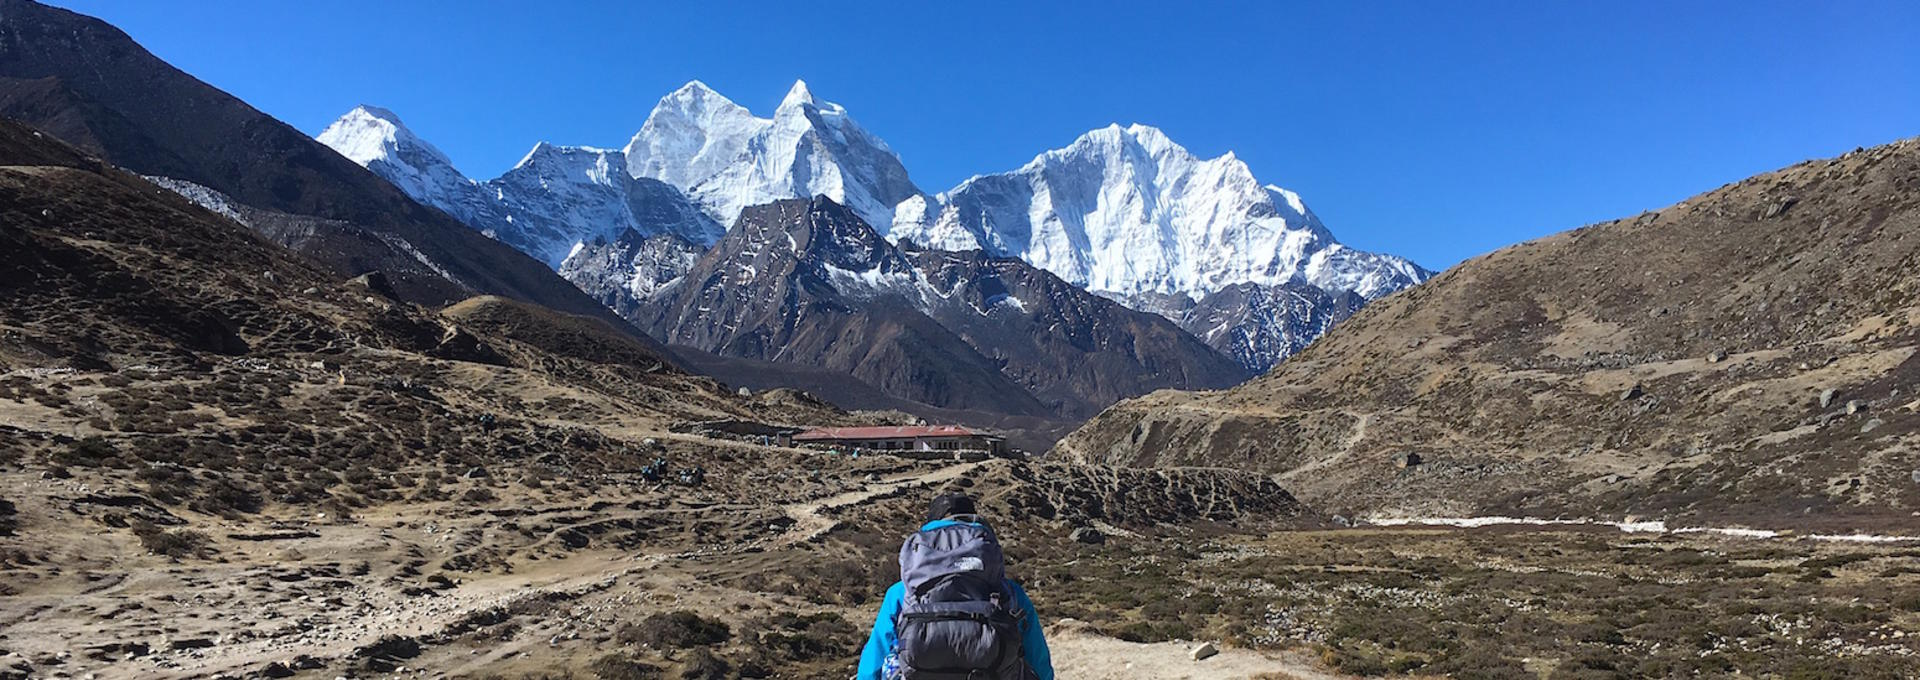 hiking to everest base camp adventurous trails